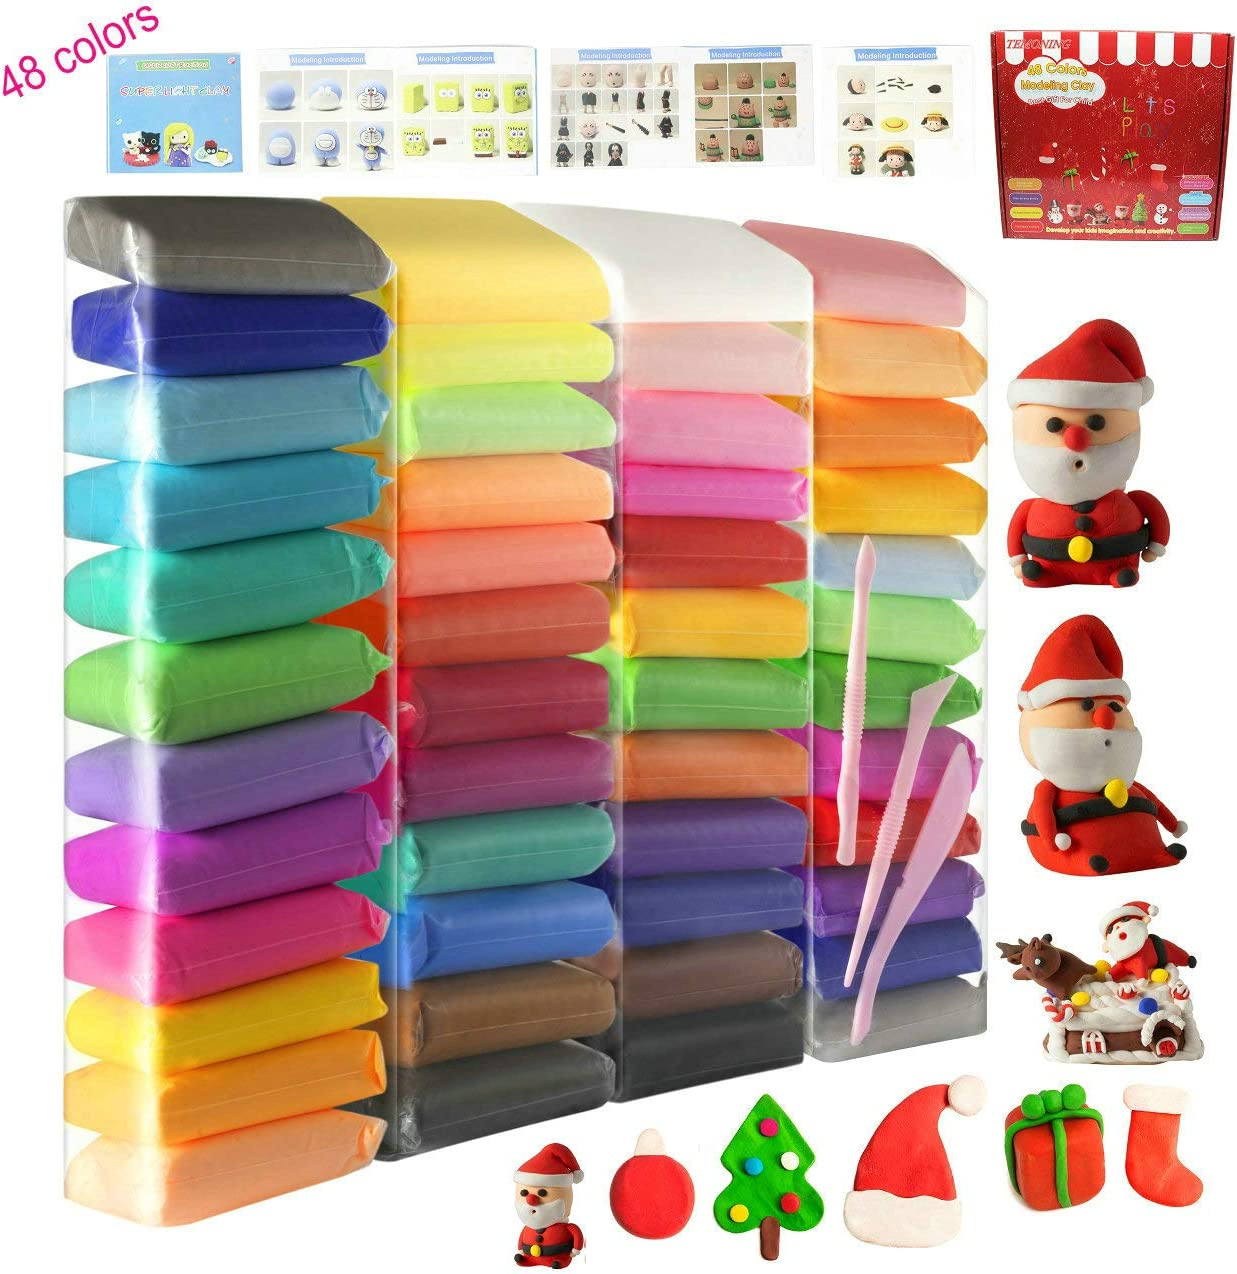 Magic Clay with Tools and Manuals Air Dry Clay 48 Pieces 26.4 Ounce 750 Gram Modeling Clay 48 Colors